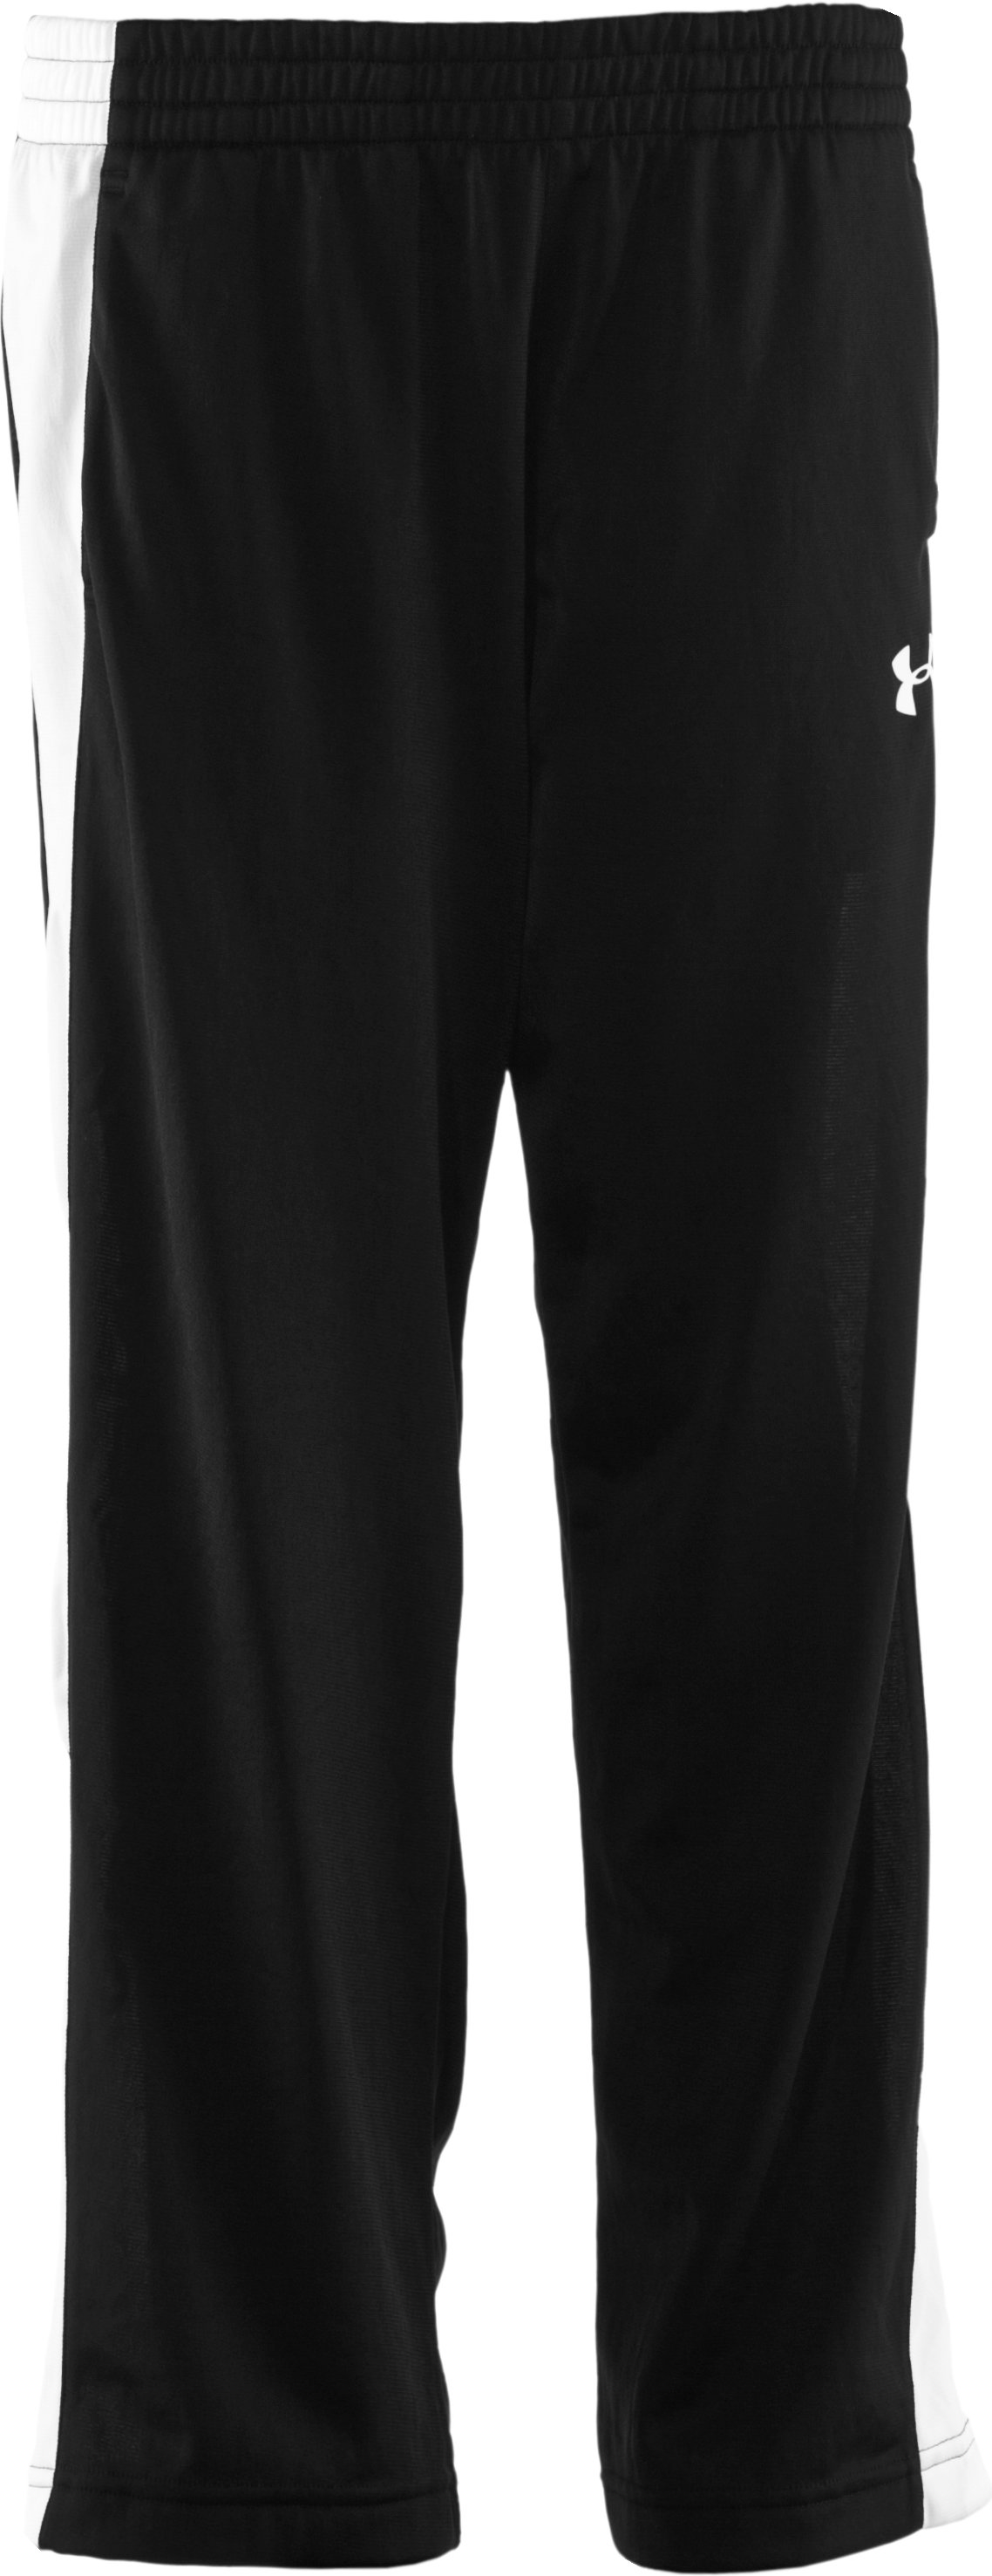 Boys' UA Brawler Knit Warm-Up Pants, Black , zoomed image